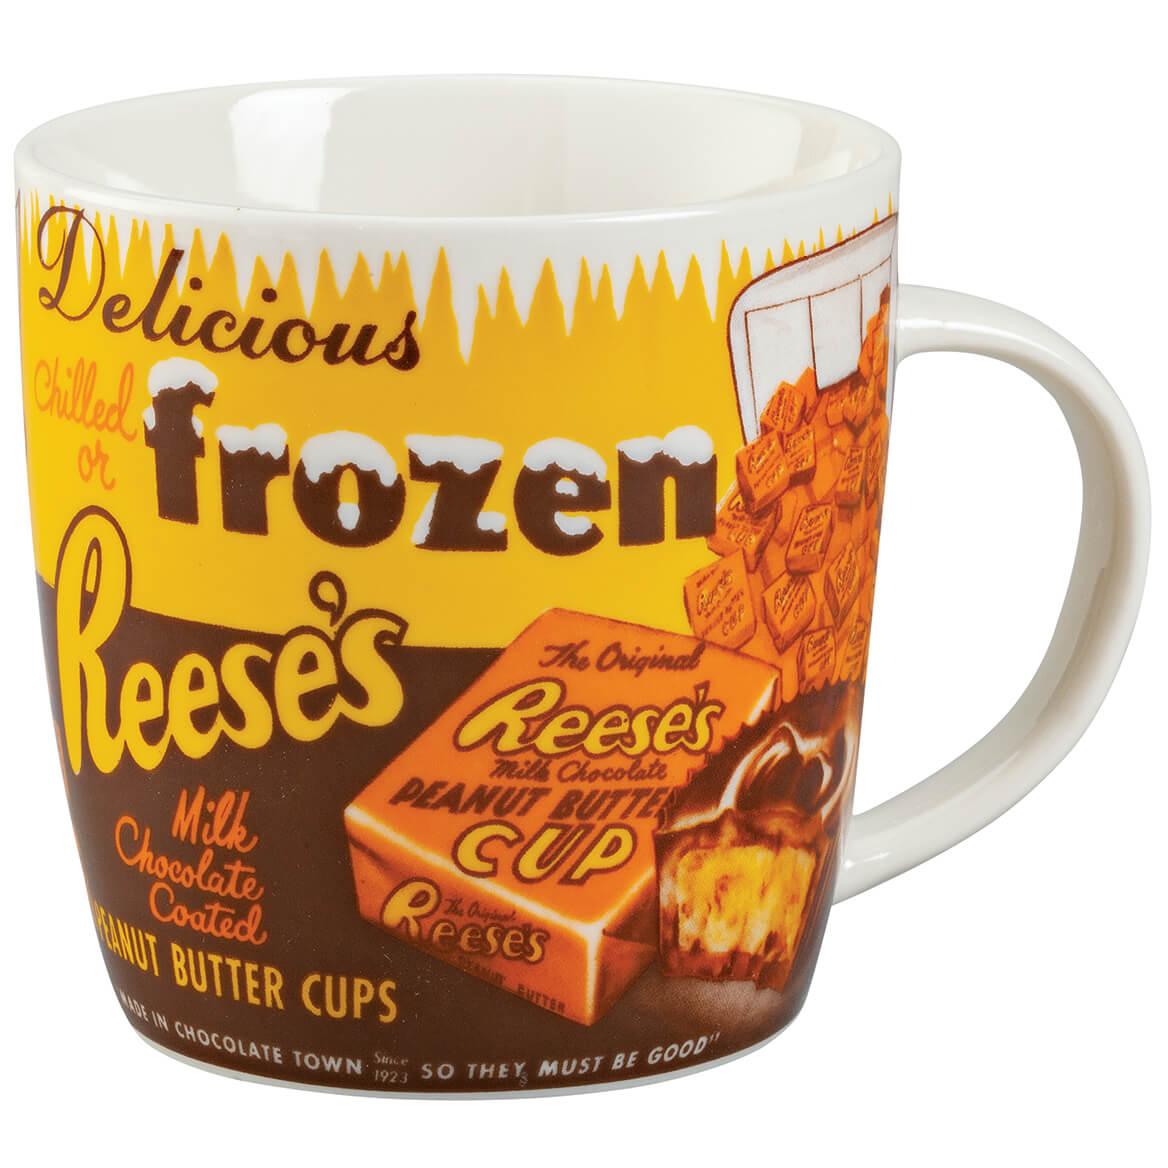 Reese's® Peanut Butter Cup Vintage Mug-370902